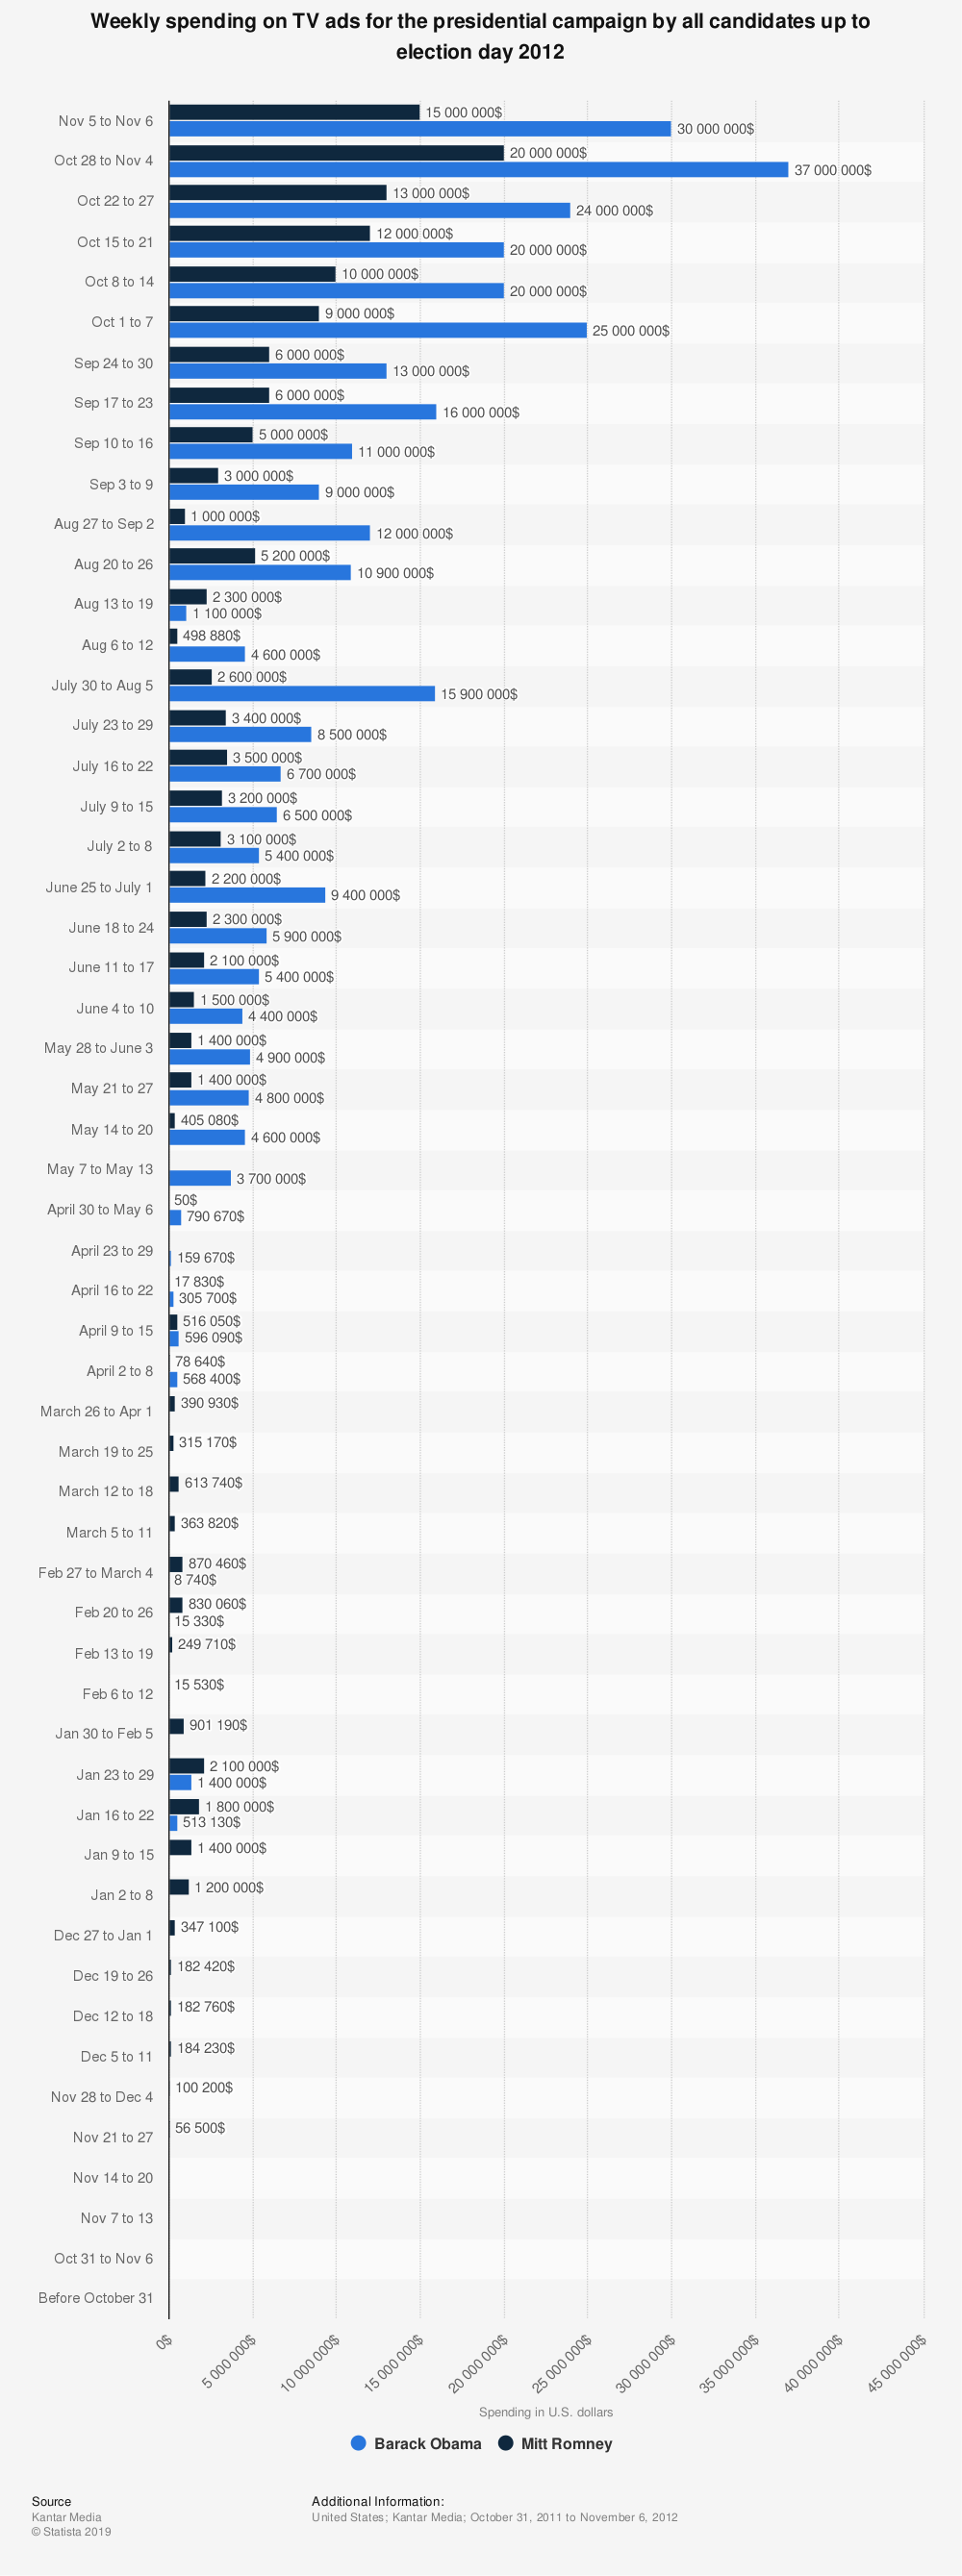 Statistic: Weekly spending on TV ads for the presidential campaign by all candidates up to election day 2012 | Statista